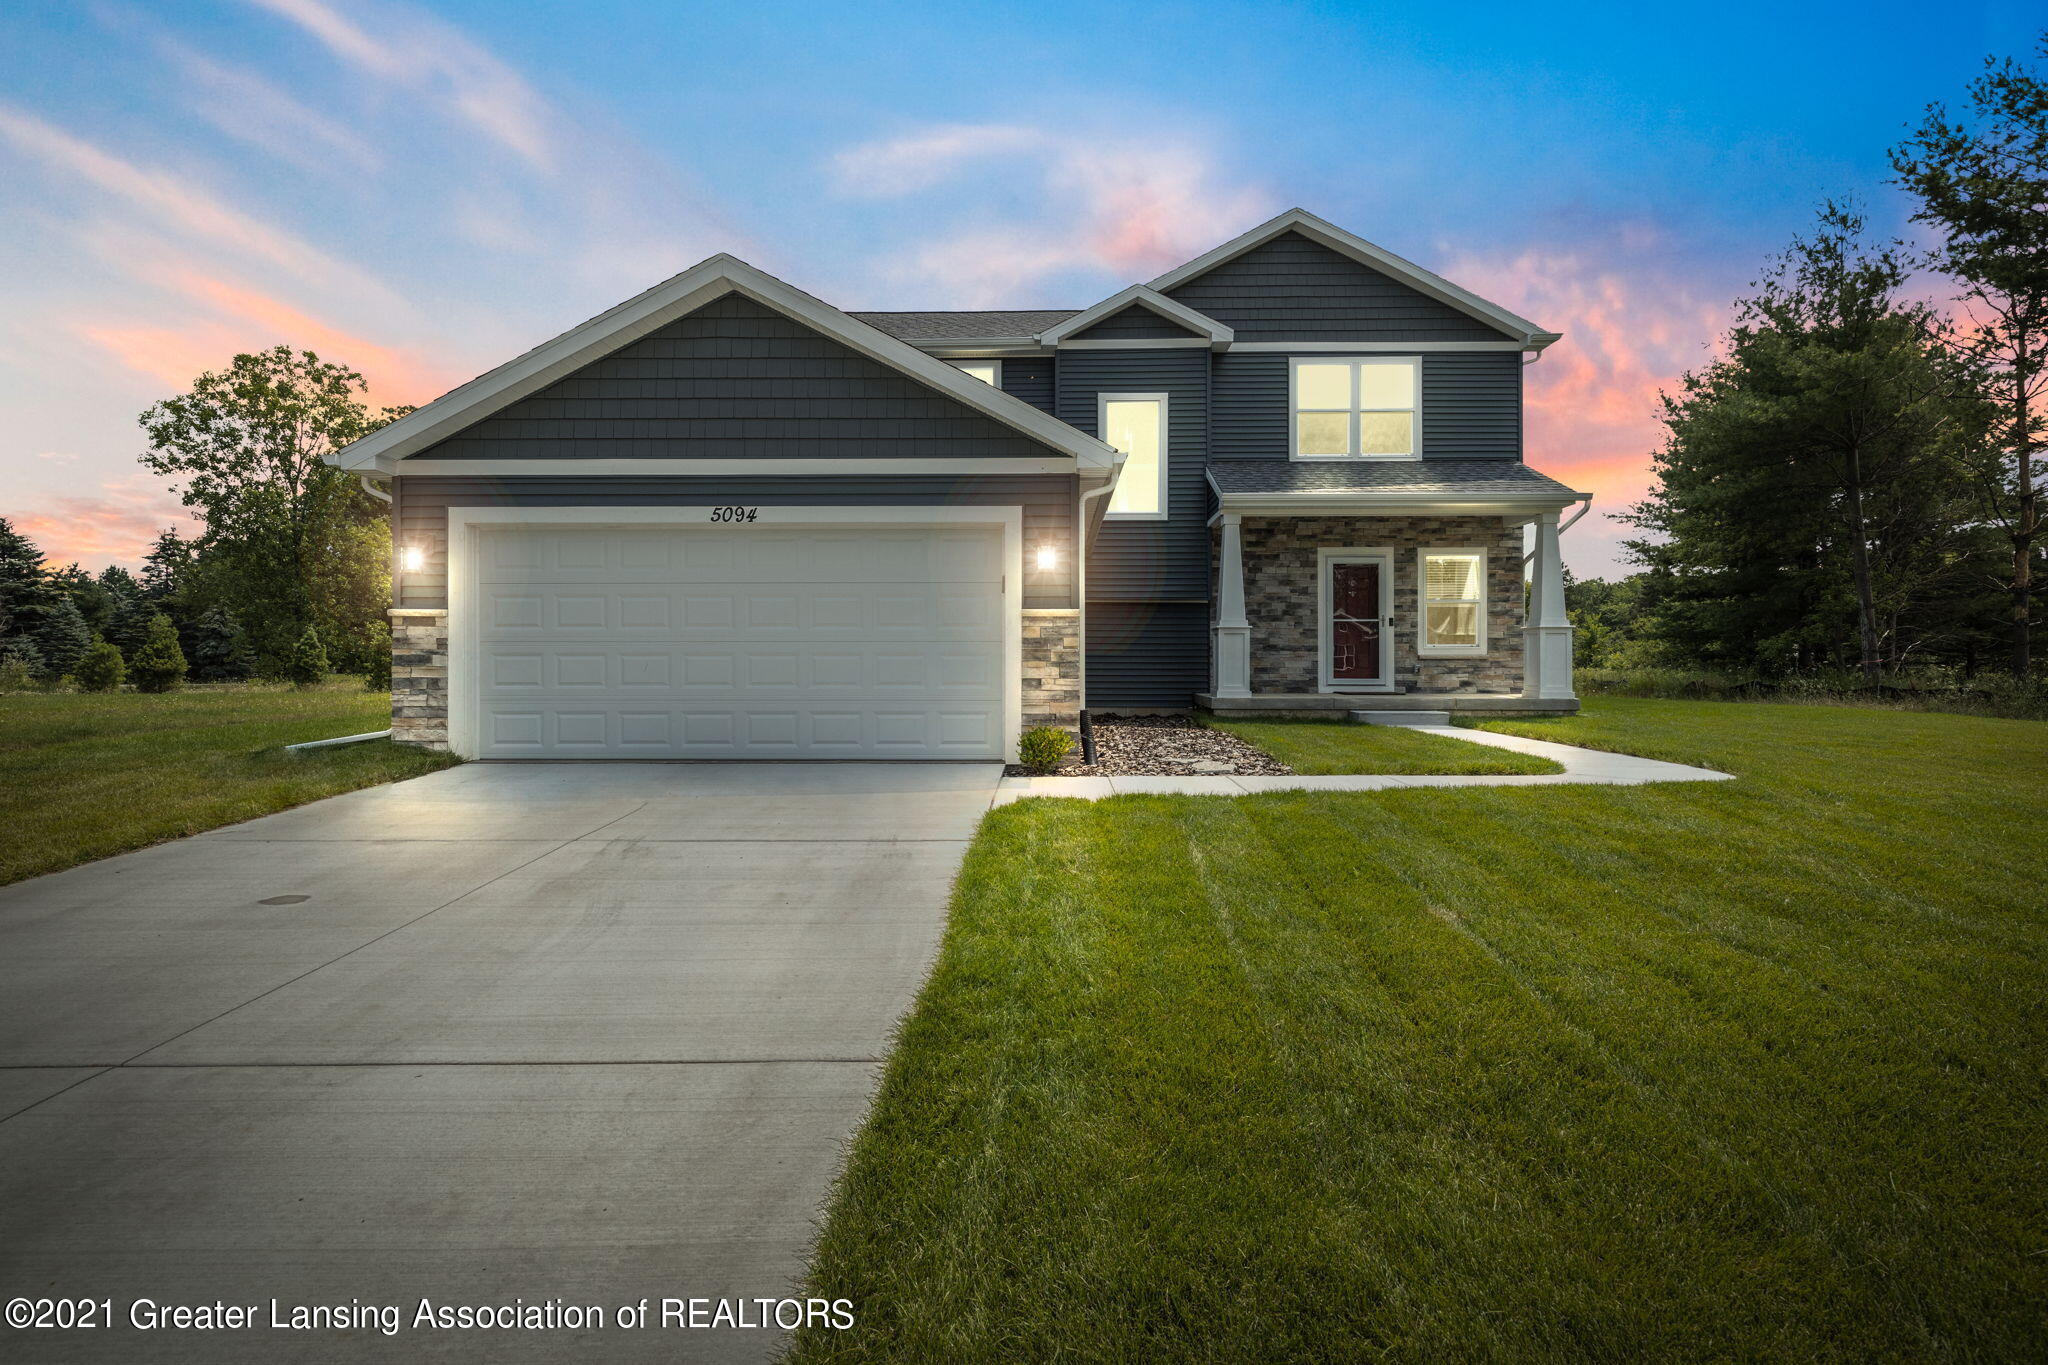 5094 Chaggal Ln - 1-web-or-mls-1P6A4983 - 1